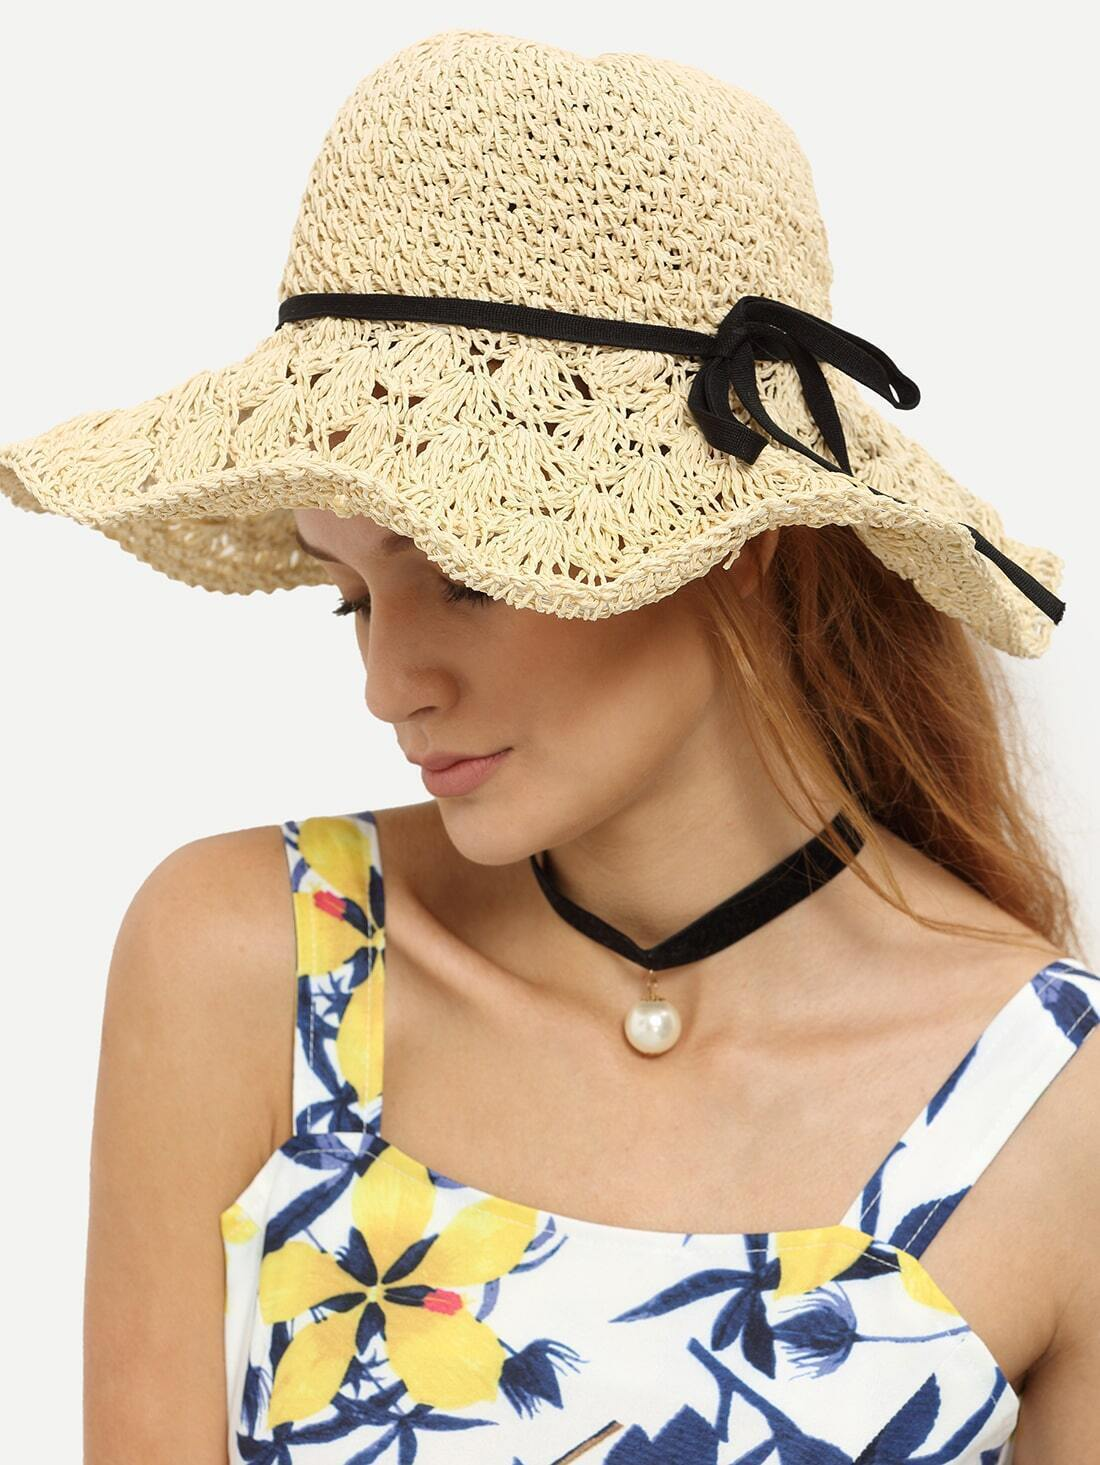 Women's Hats, Fashion Hats, Womens Straw Hats at Lulus 95